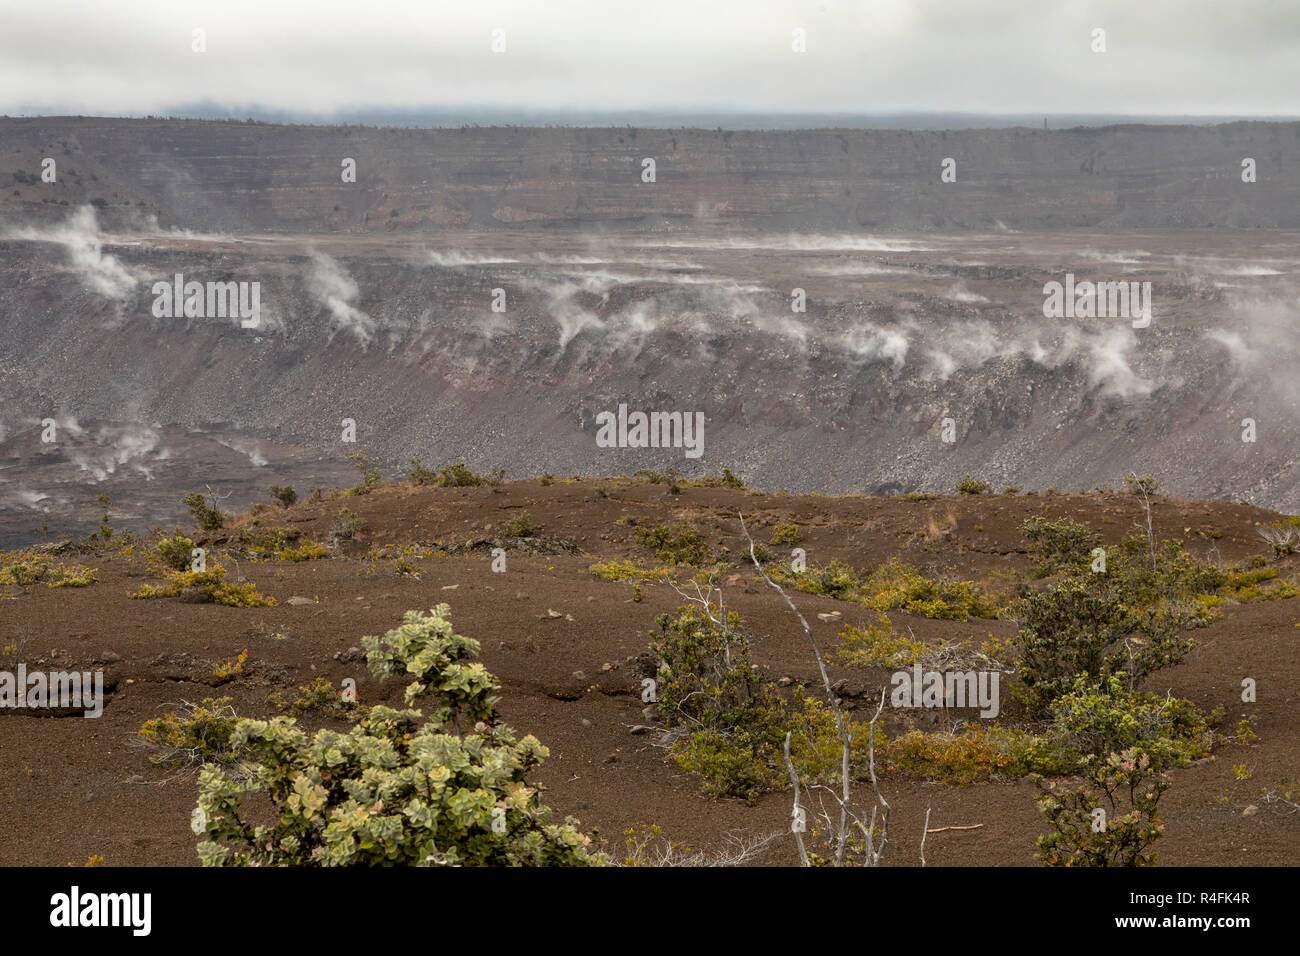 Hawaii Volcanoes National Park, Hawaii - Steam vents in the Kilauea caldera folling the 2018 volcanic eruption. - Stock Image